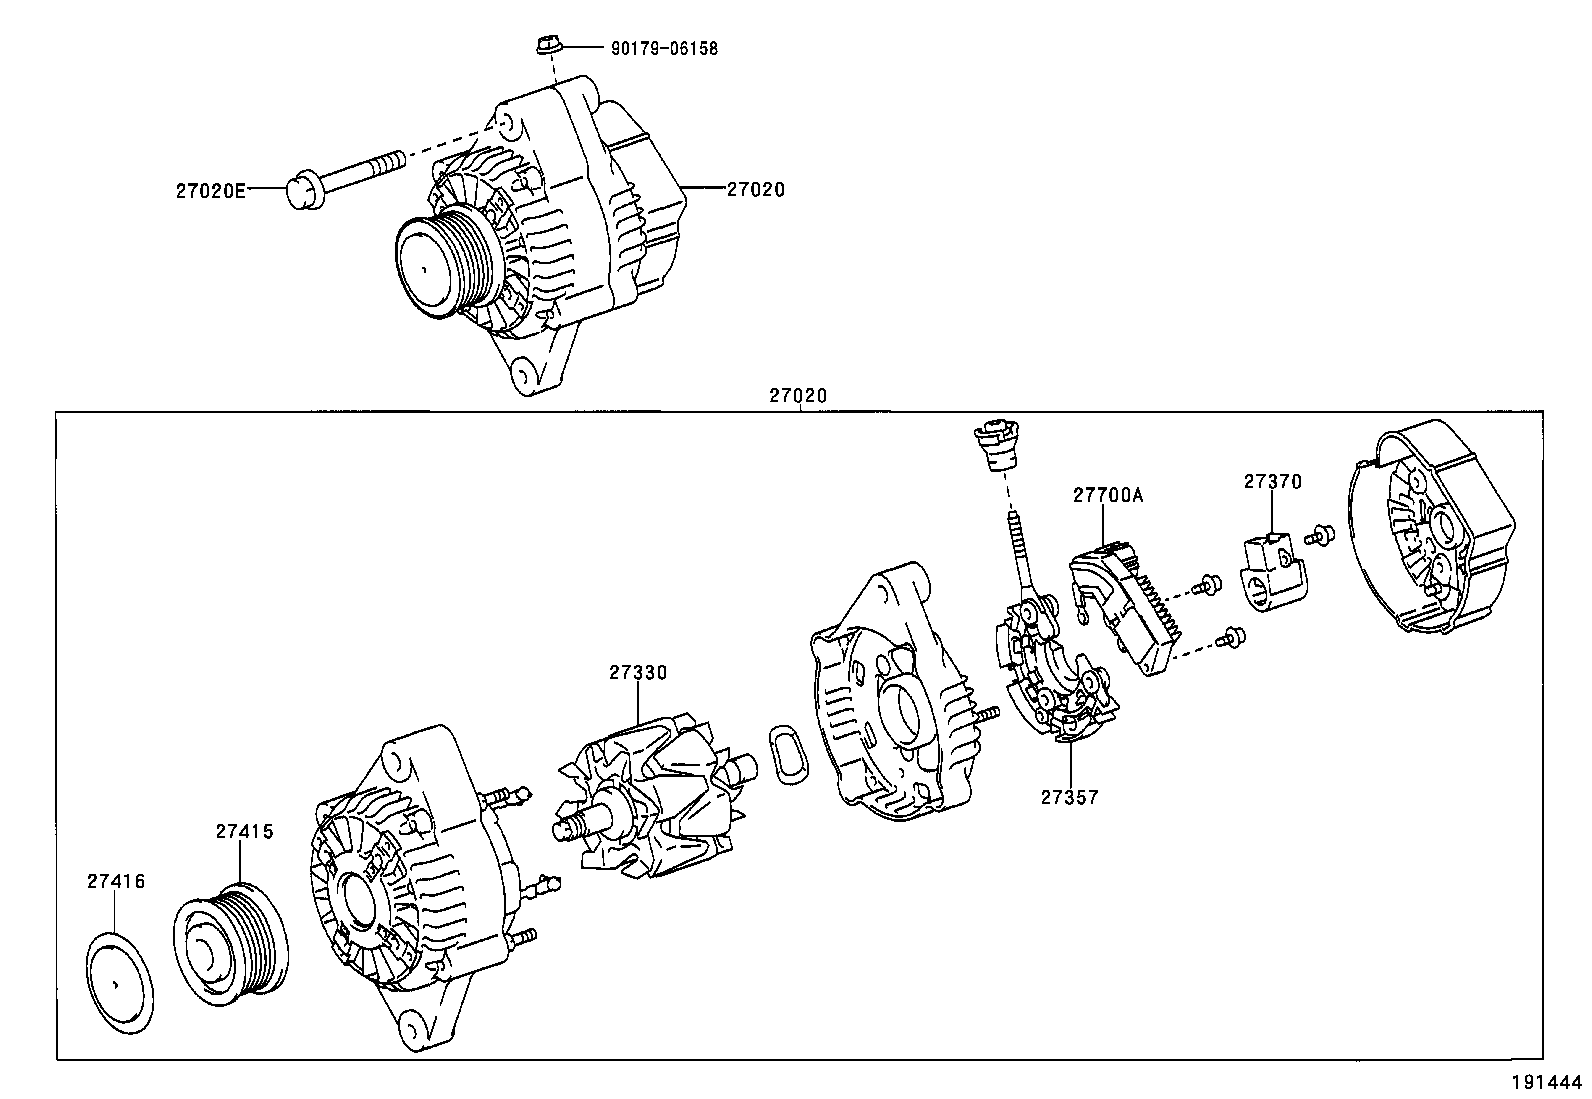 toyota hiluxkdn190l-prpsyw - tool-engine-fuel